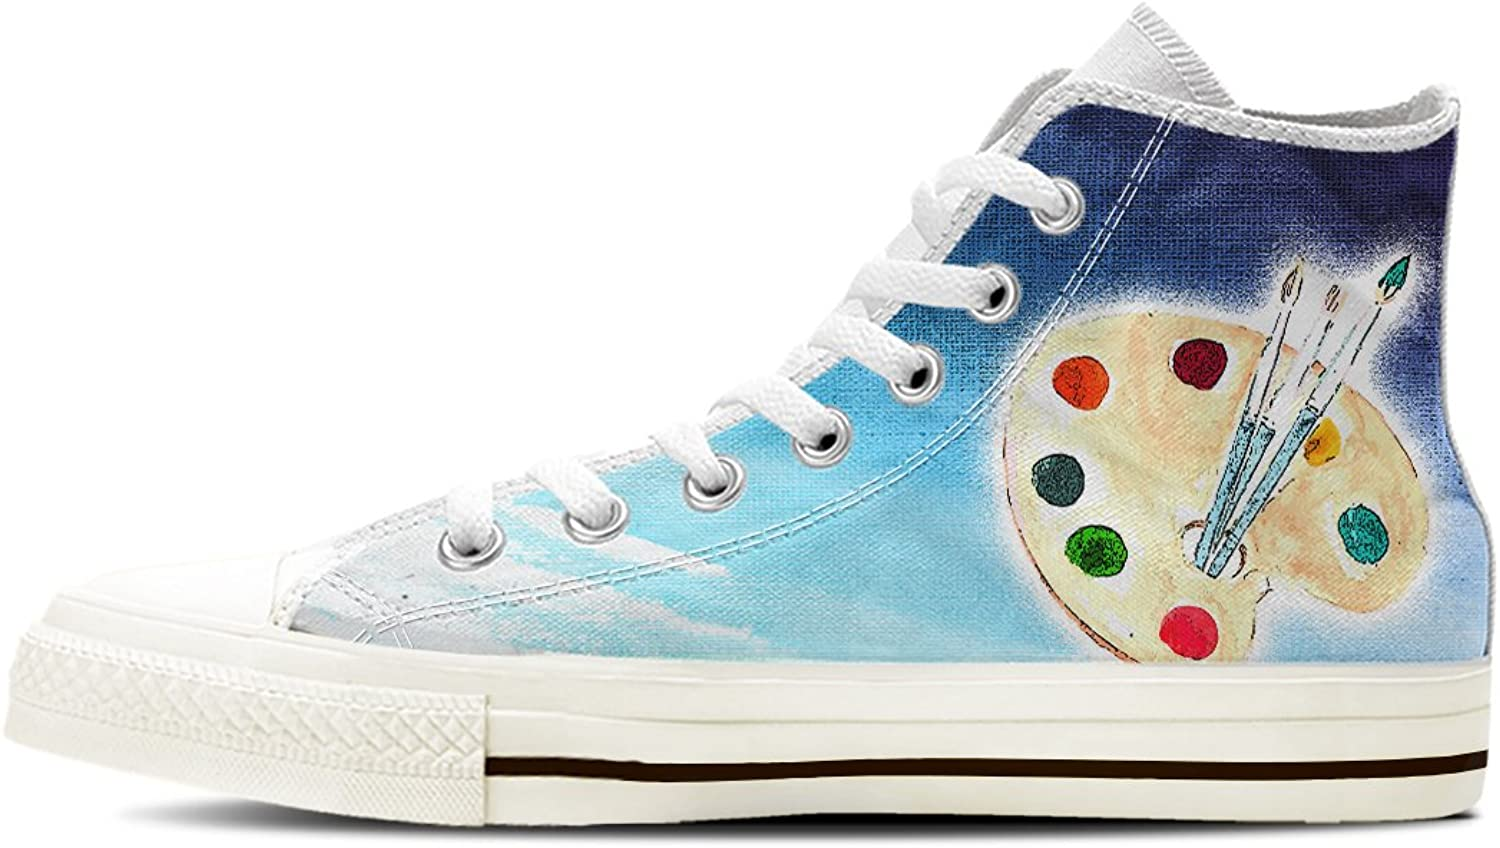 Gnarly Tees Men's Painting Artist shoes High Top